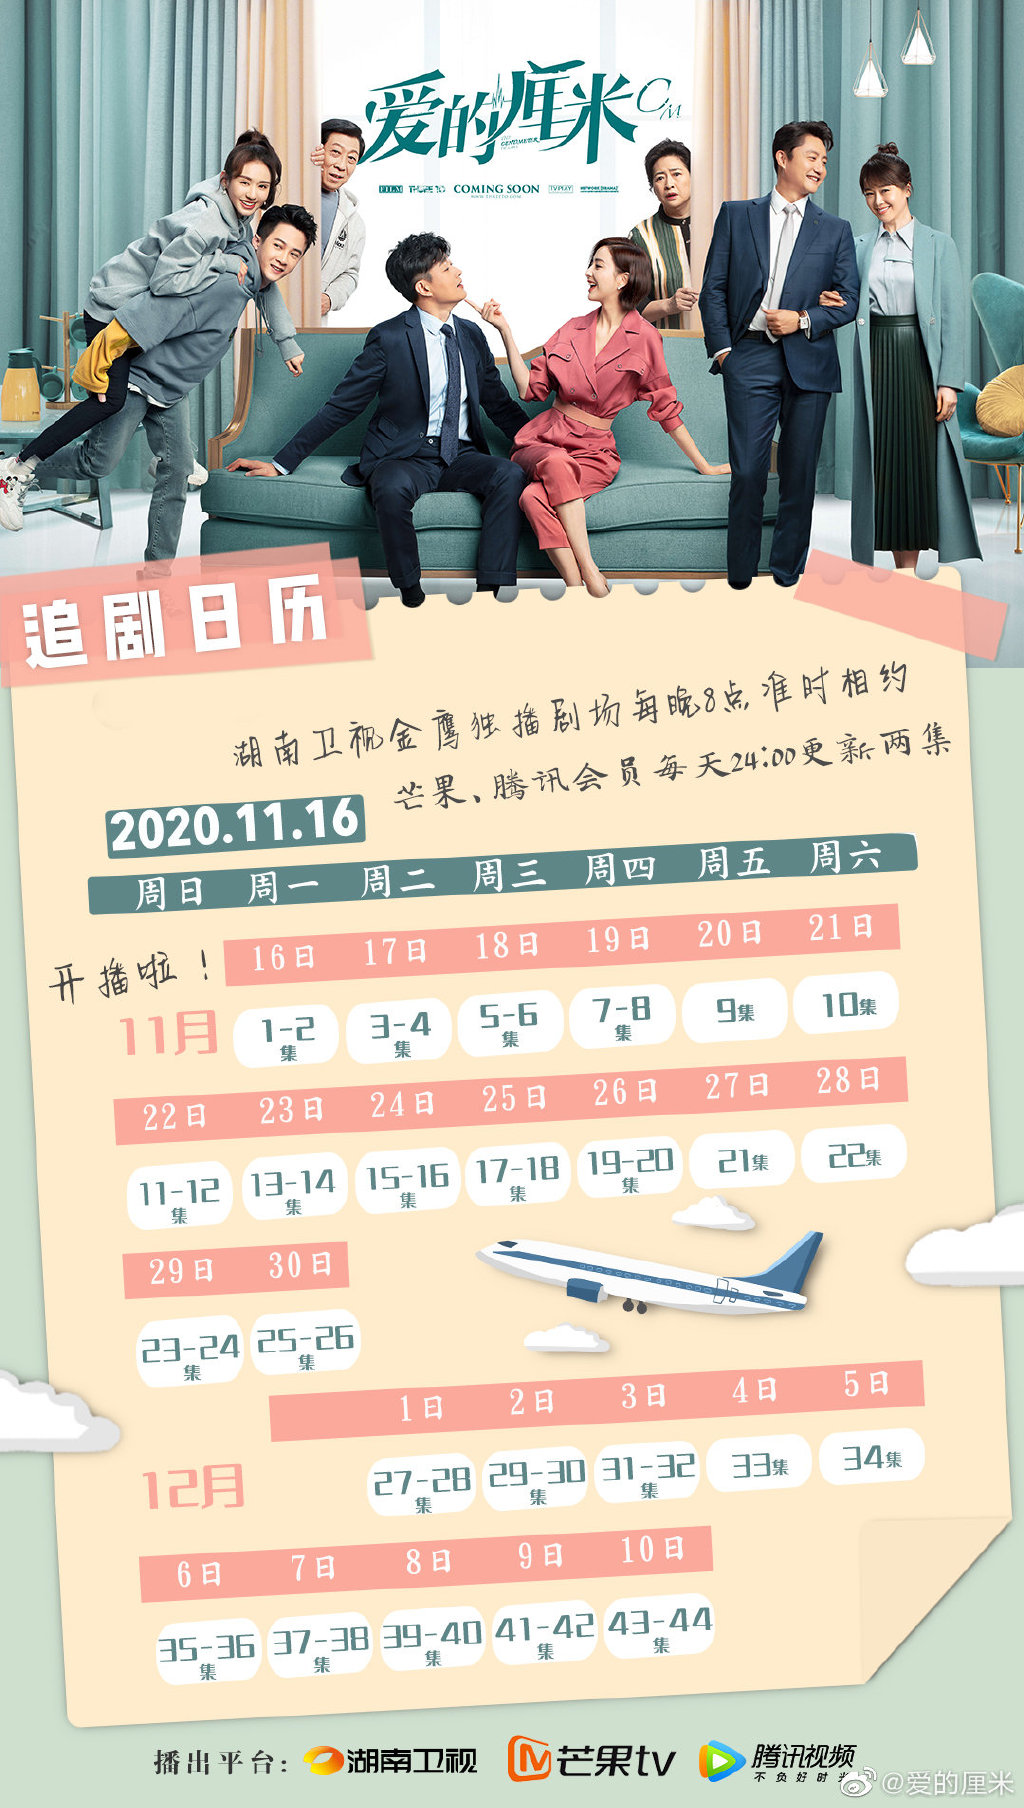 The Centimeter Of Love Chinese Drama Airing Calendar